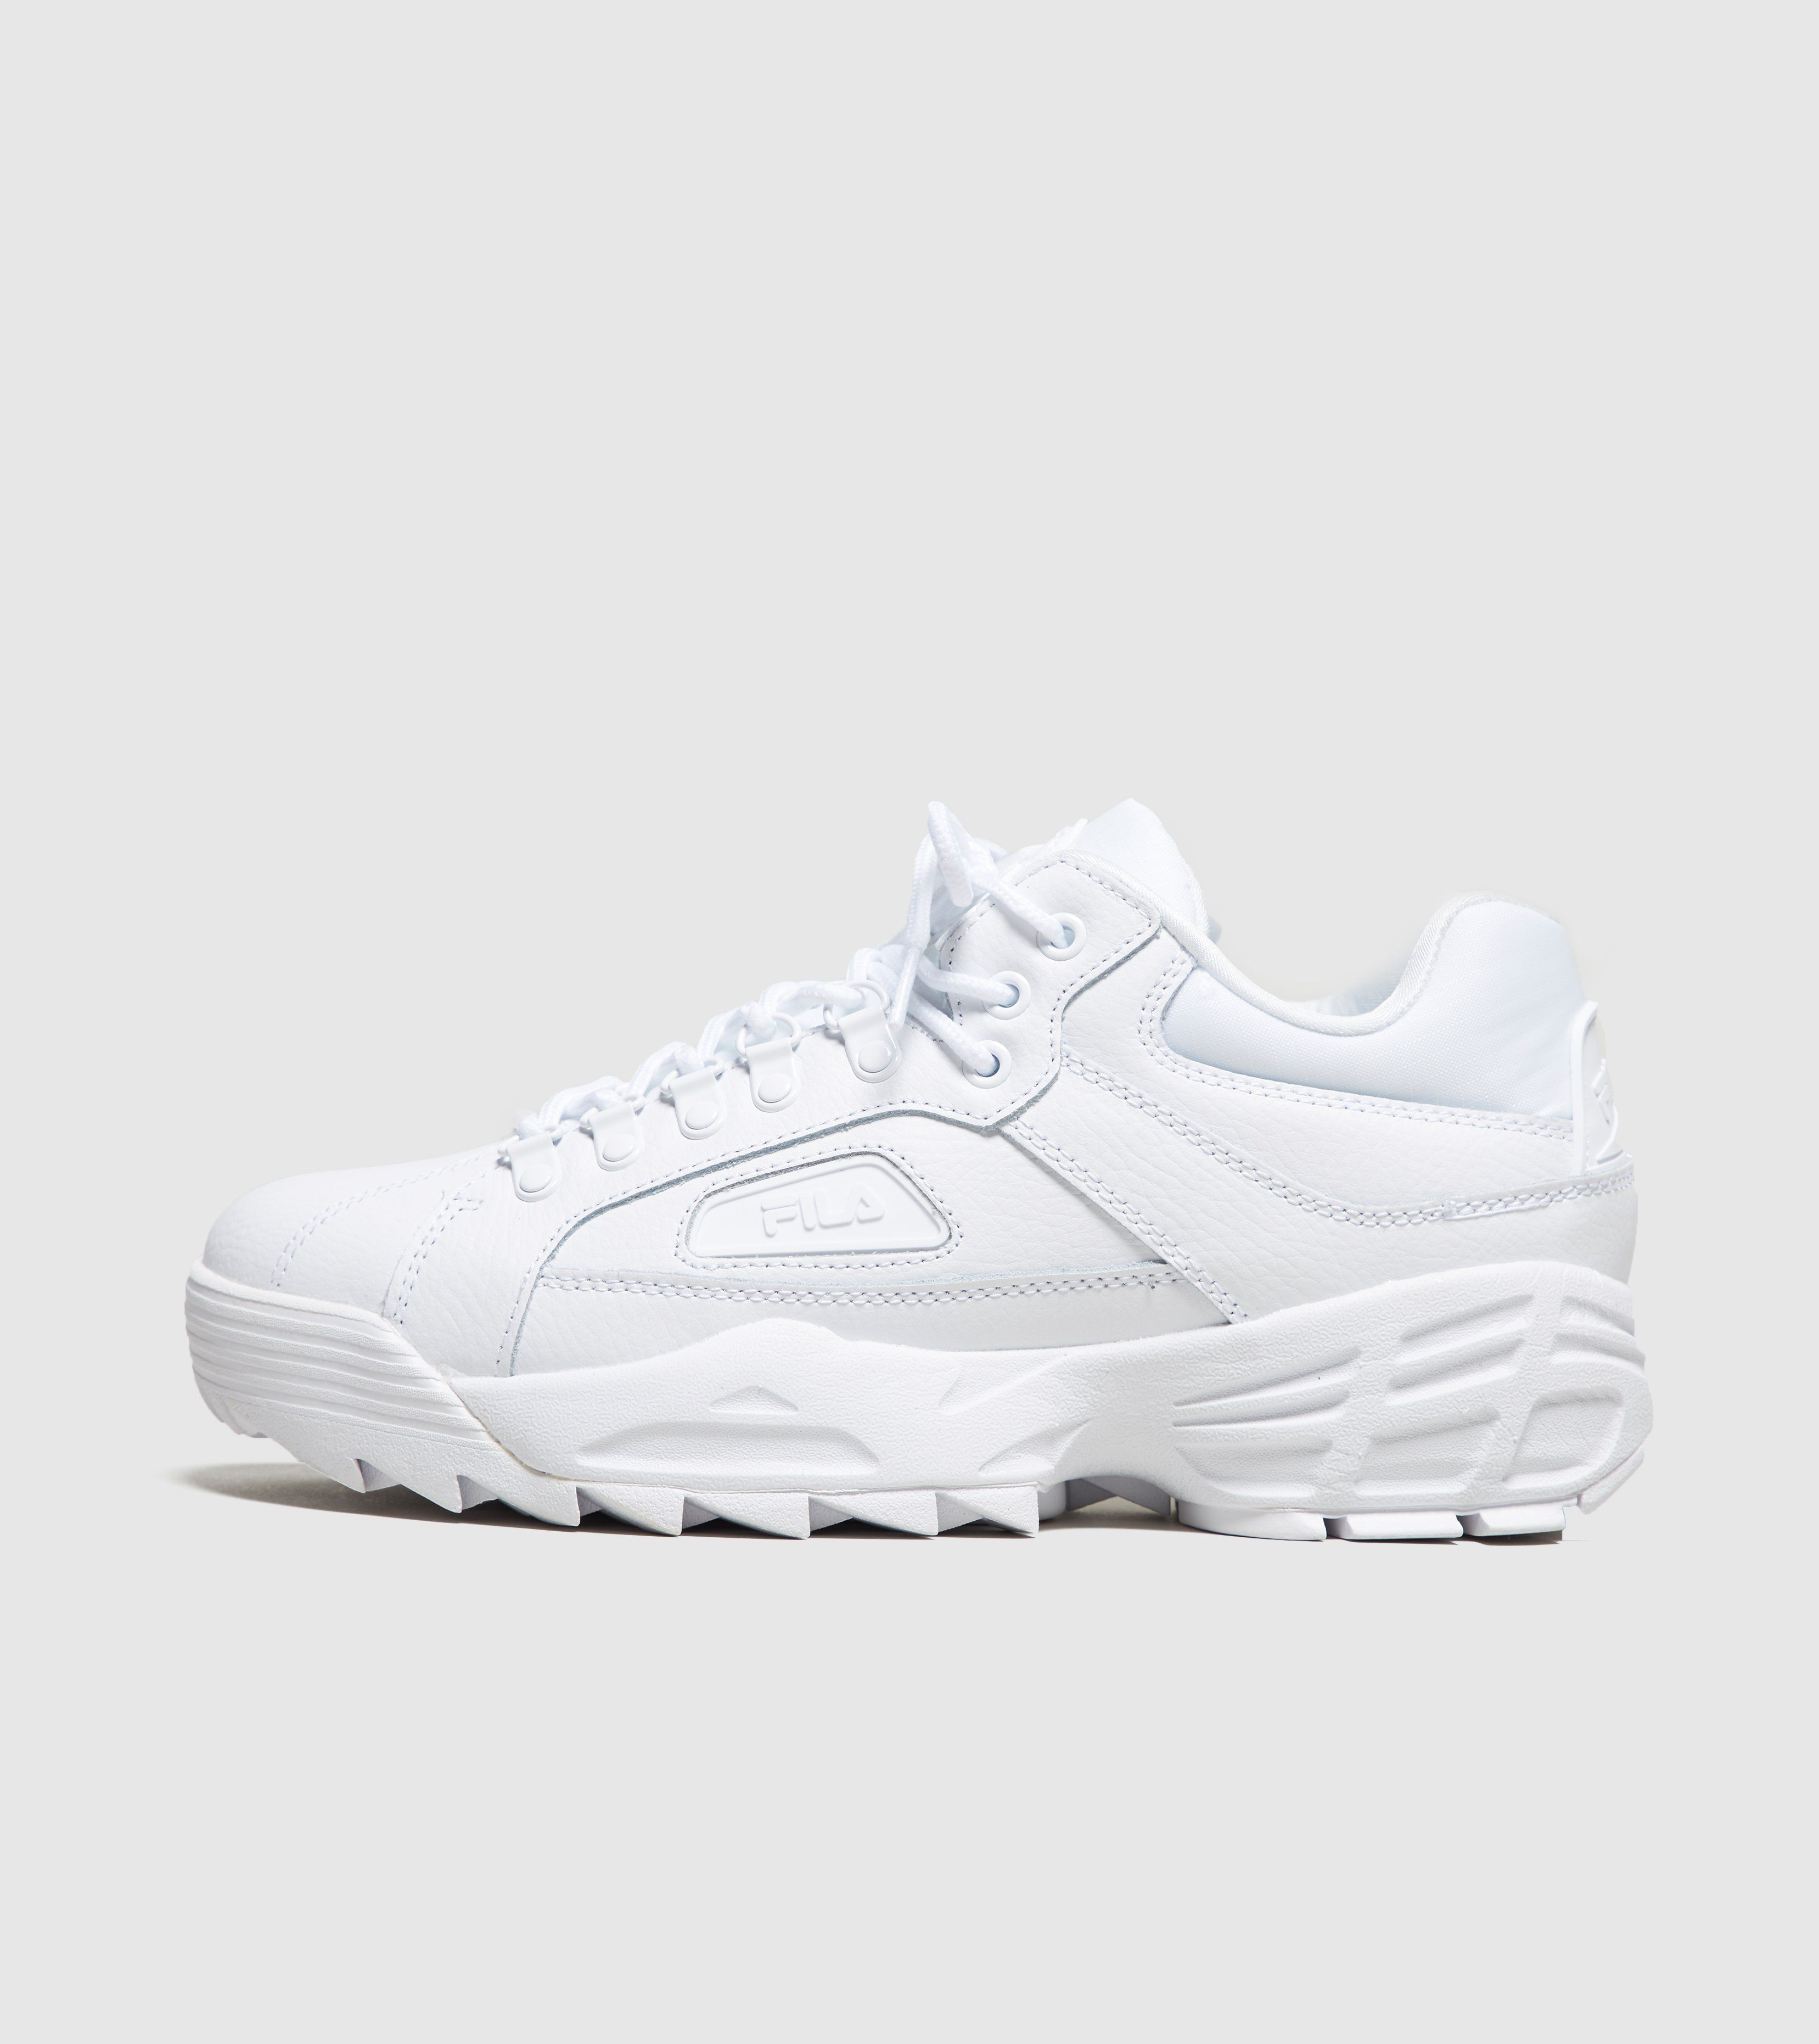 364807d2cd Fila Trailruptor - size  Exclusive - find out more on our site. Find the  freshest in trainers and clothing online now.